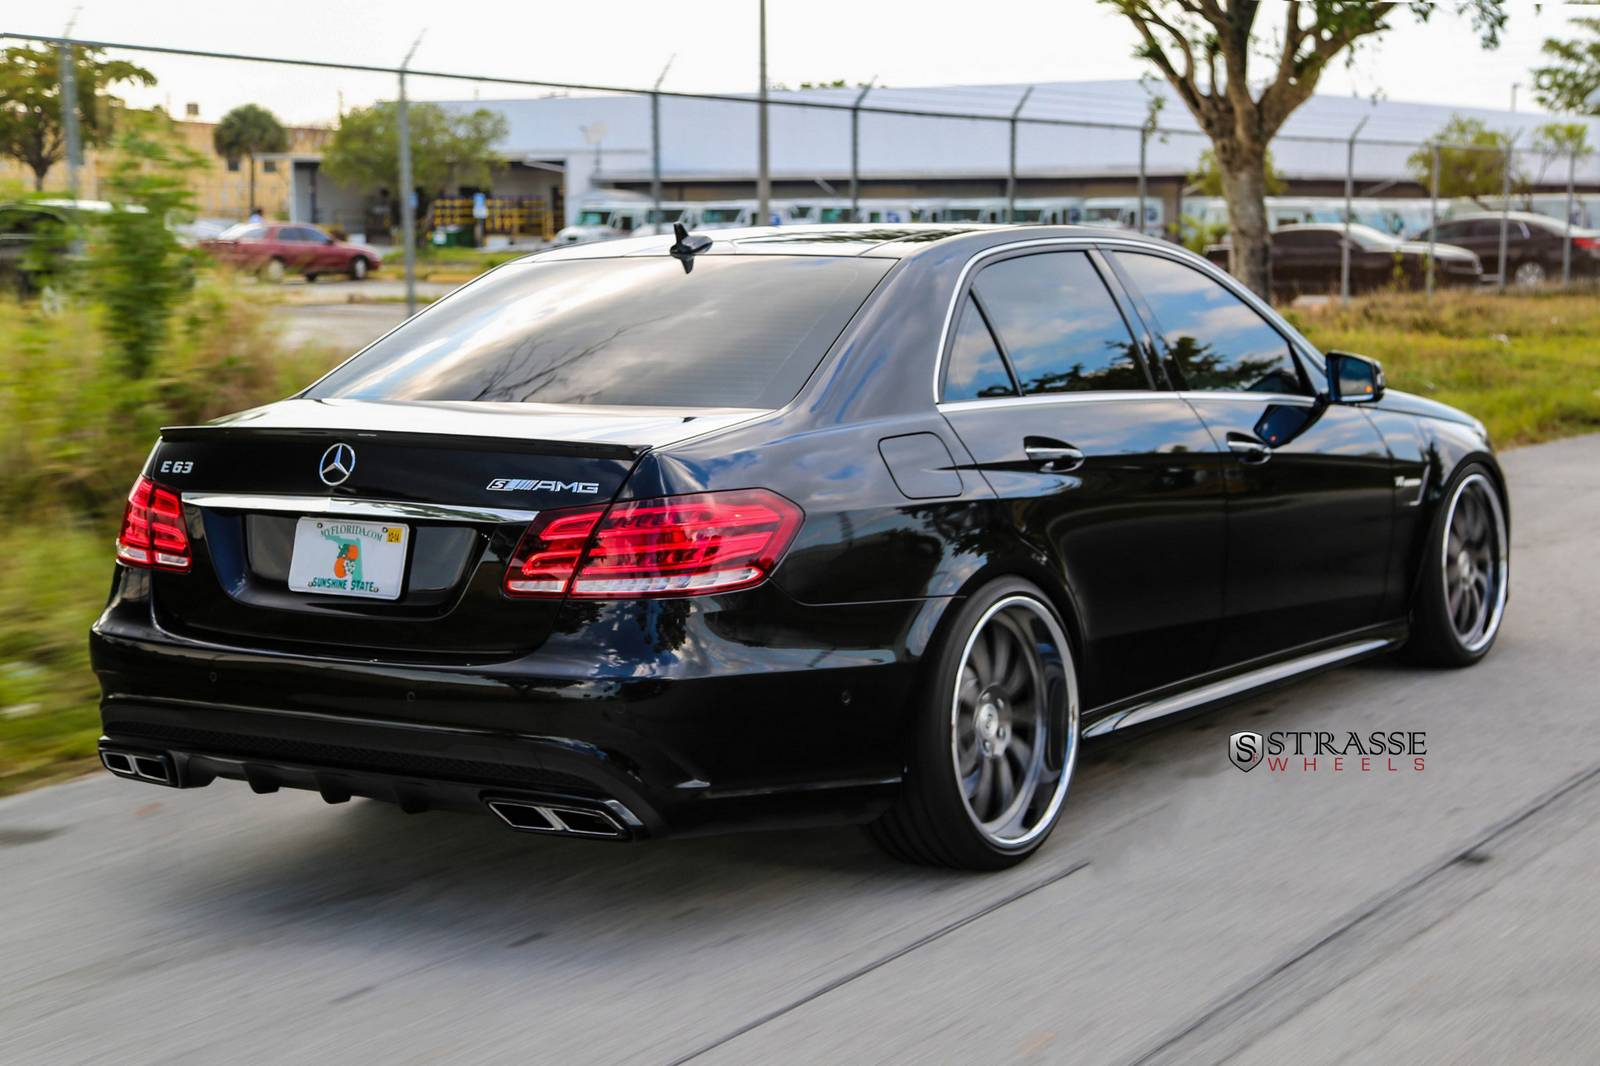 2014 mercedes benz e63 amg s by titanio automotive gtspirit for Mercedes benz e 63 amg